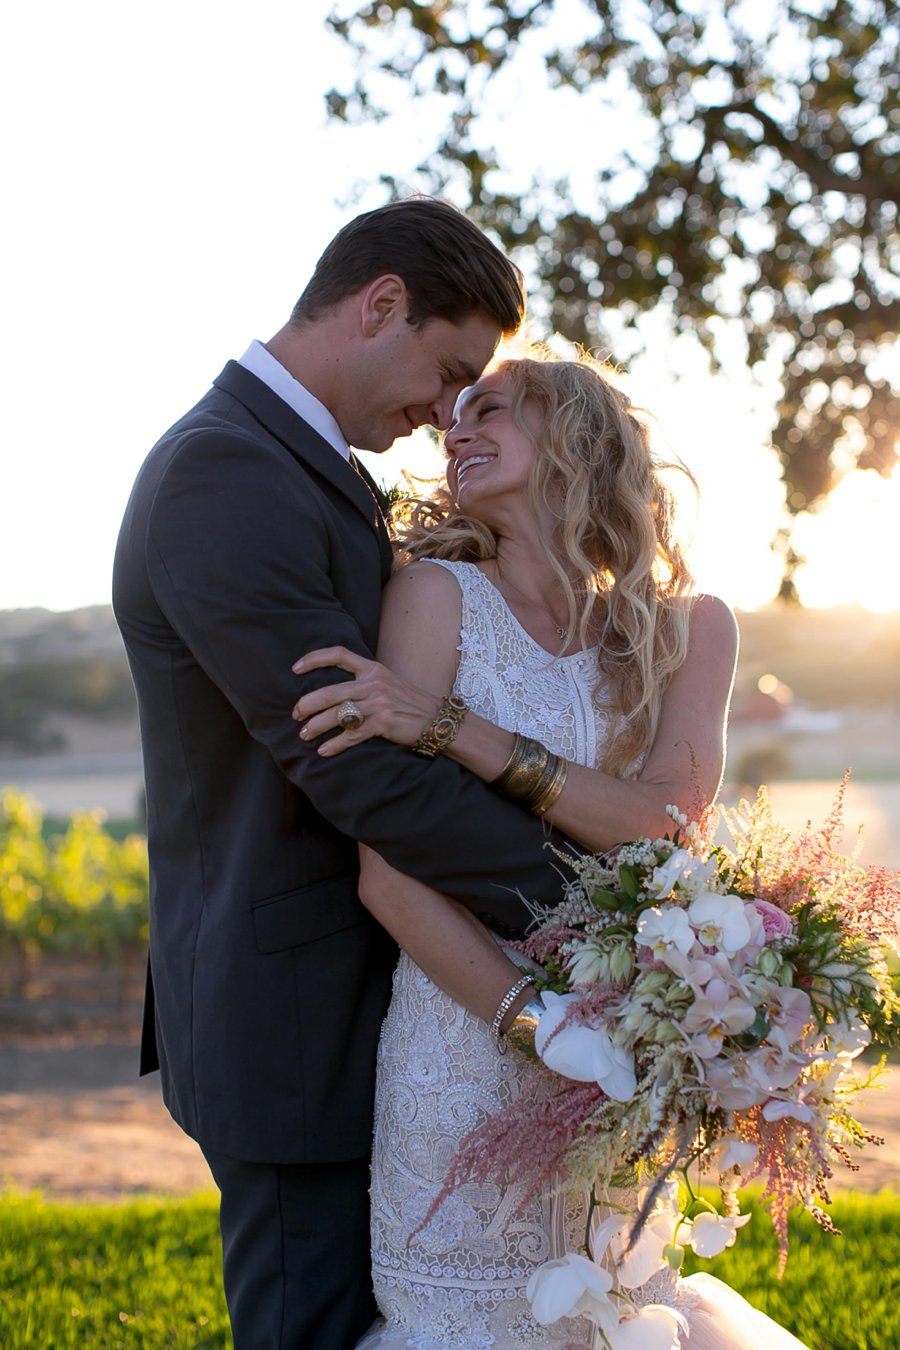 STOLPMANN VILLA AND VINEYARDS | LOS OLIVOS WEDDING PHOTOGRAPHER CHRIS HOLT PHOTOGRAPHY_057.jpg